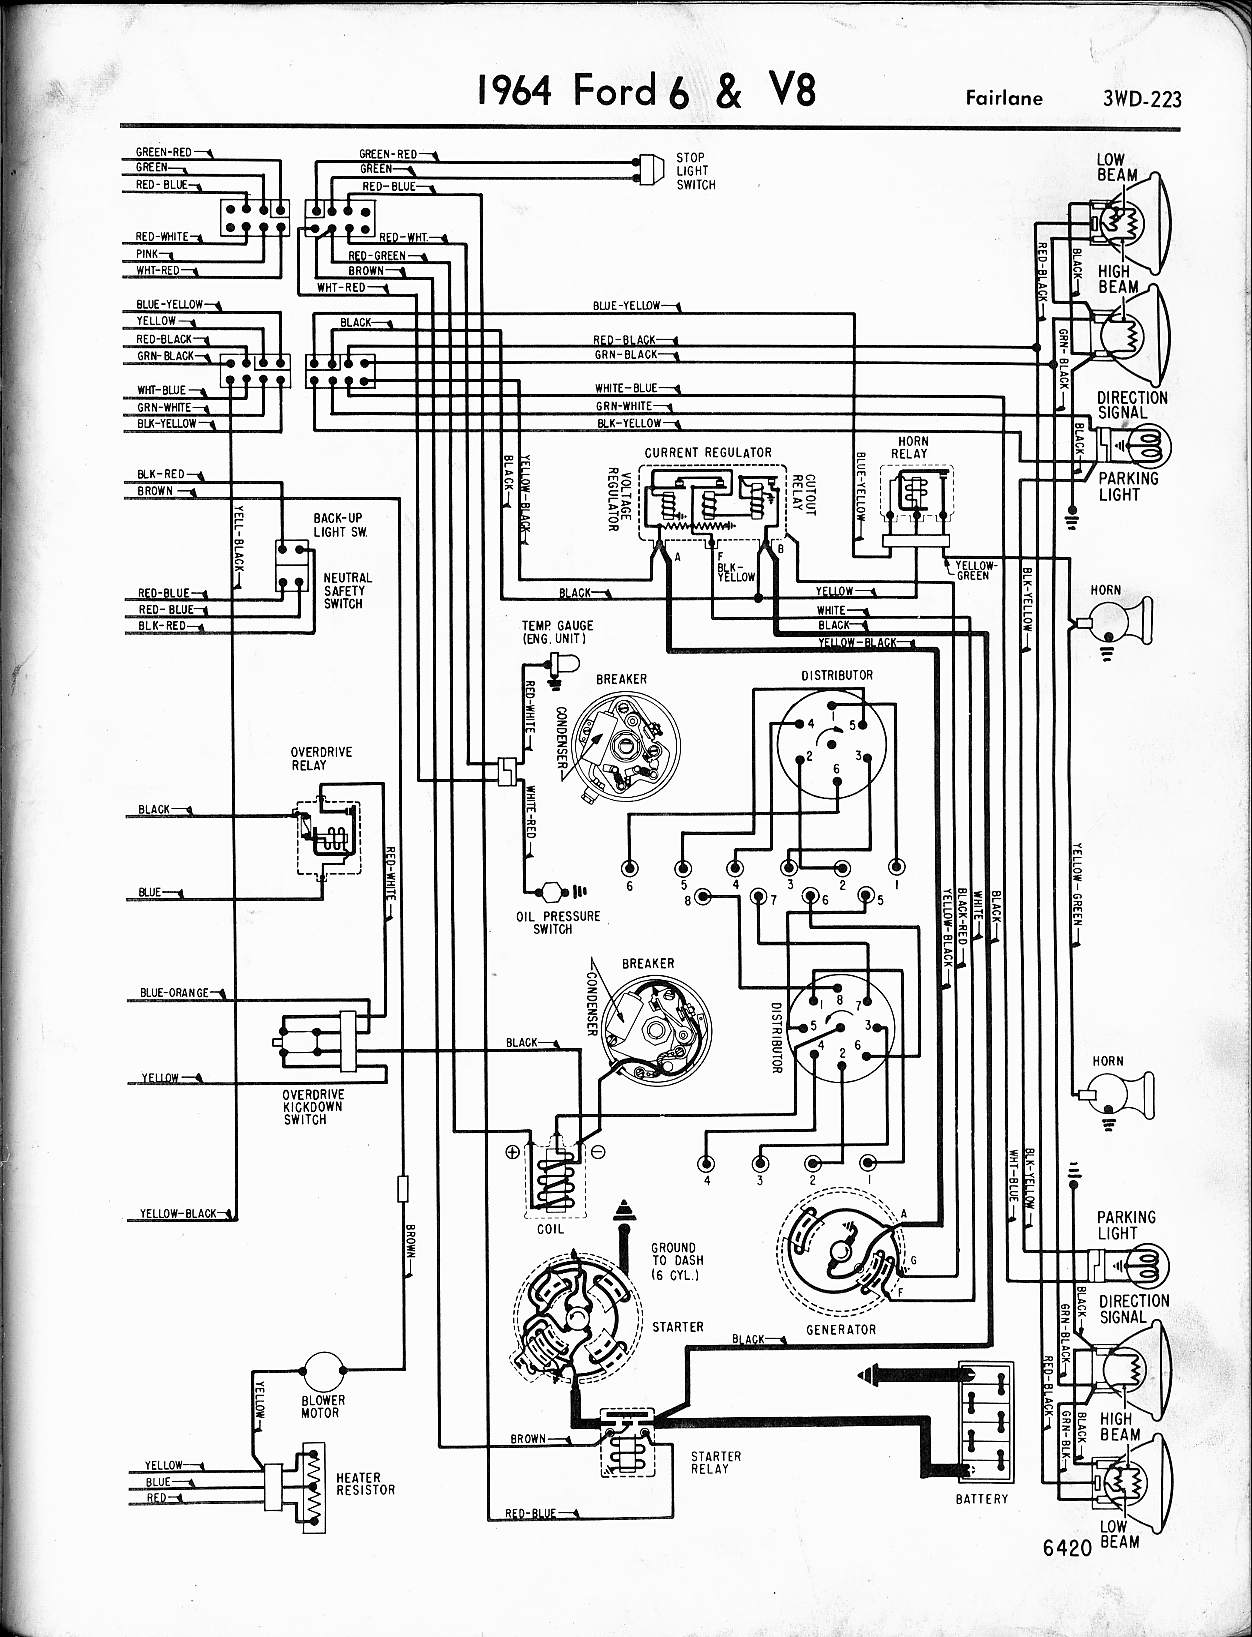 MWire5765 223 57 65 ford wiring diagrams 1966 ford fairlane wiring diagram at mifinder.co